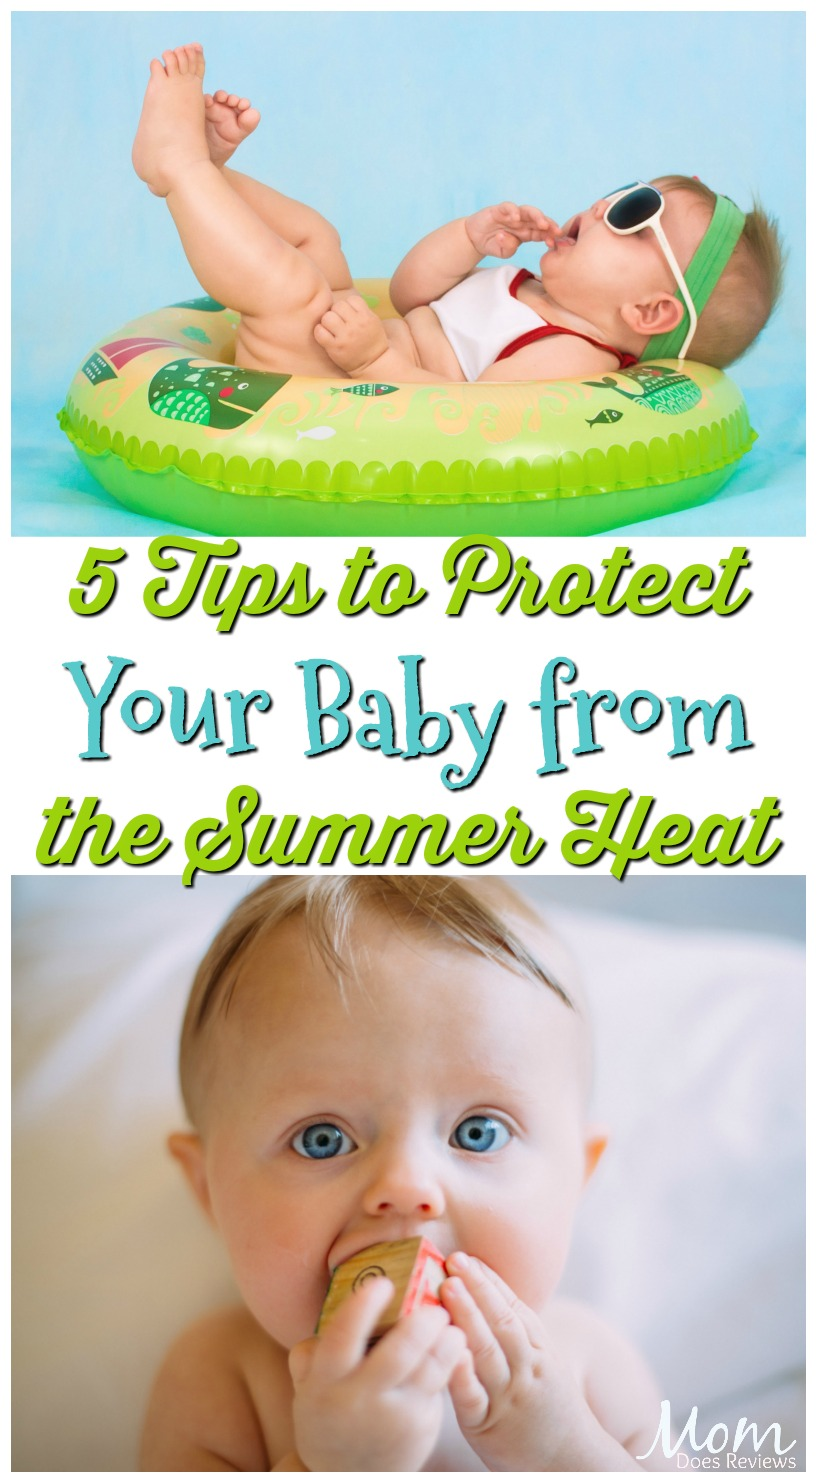 5 Tips to Protect Your Baby from the Summer Heat #parenting #babies #summer